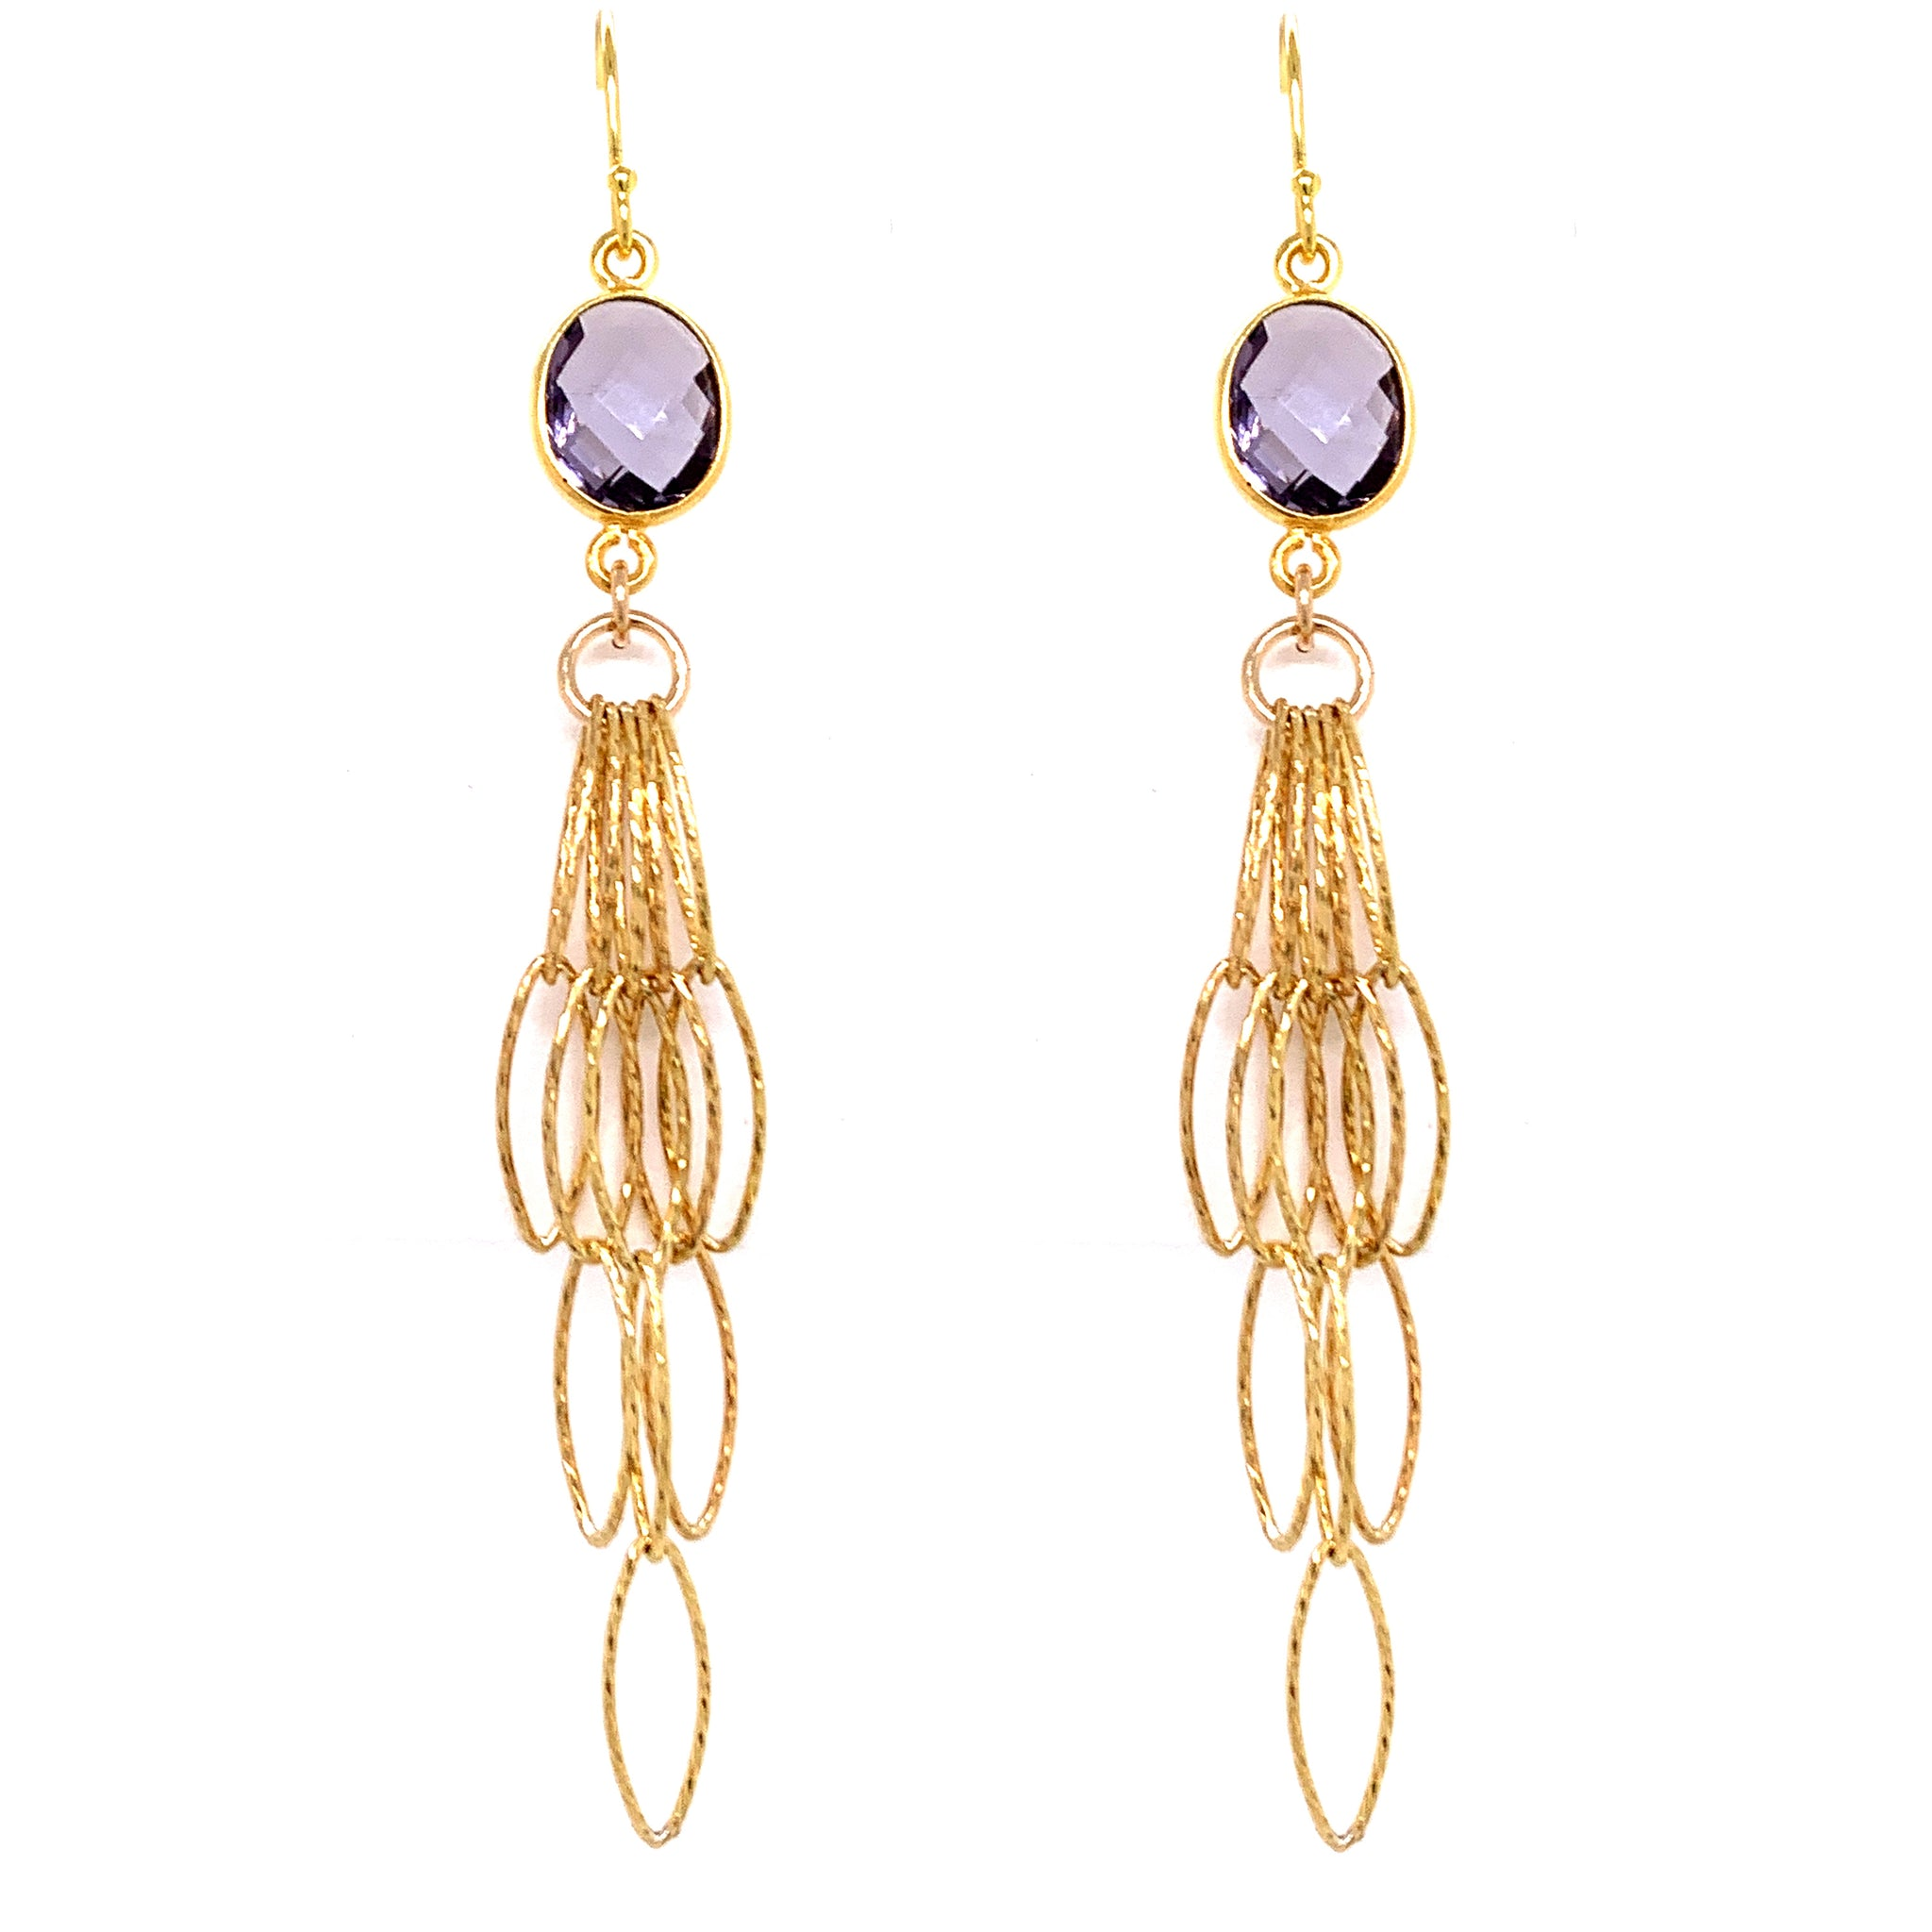 Lavender Amethyst Tassel Bottom Earrings